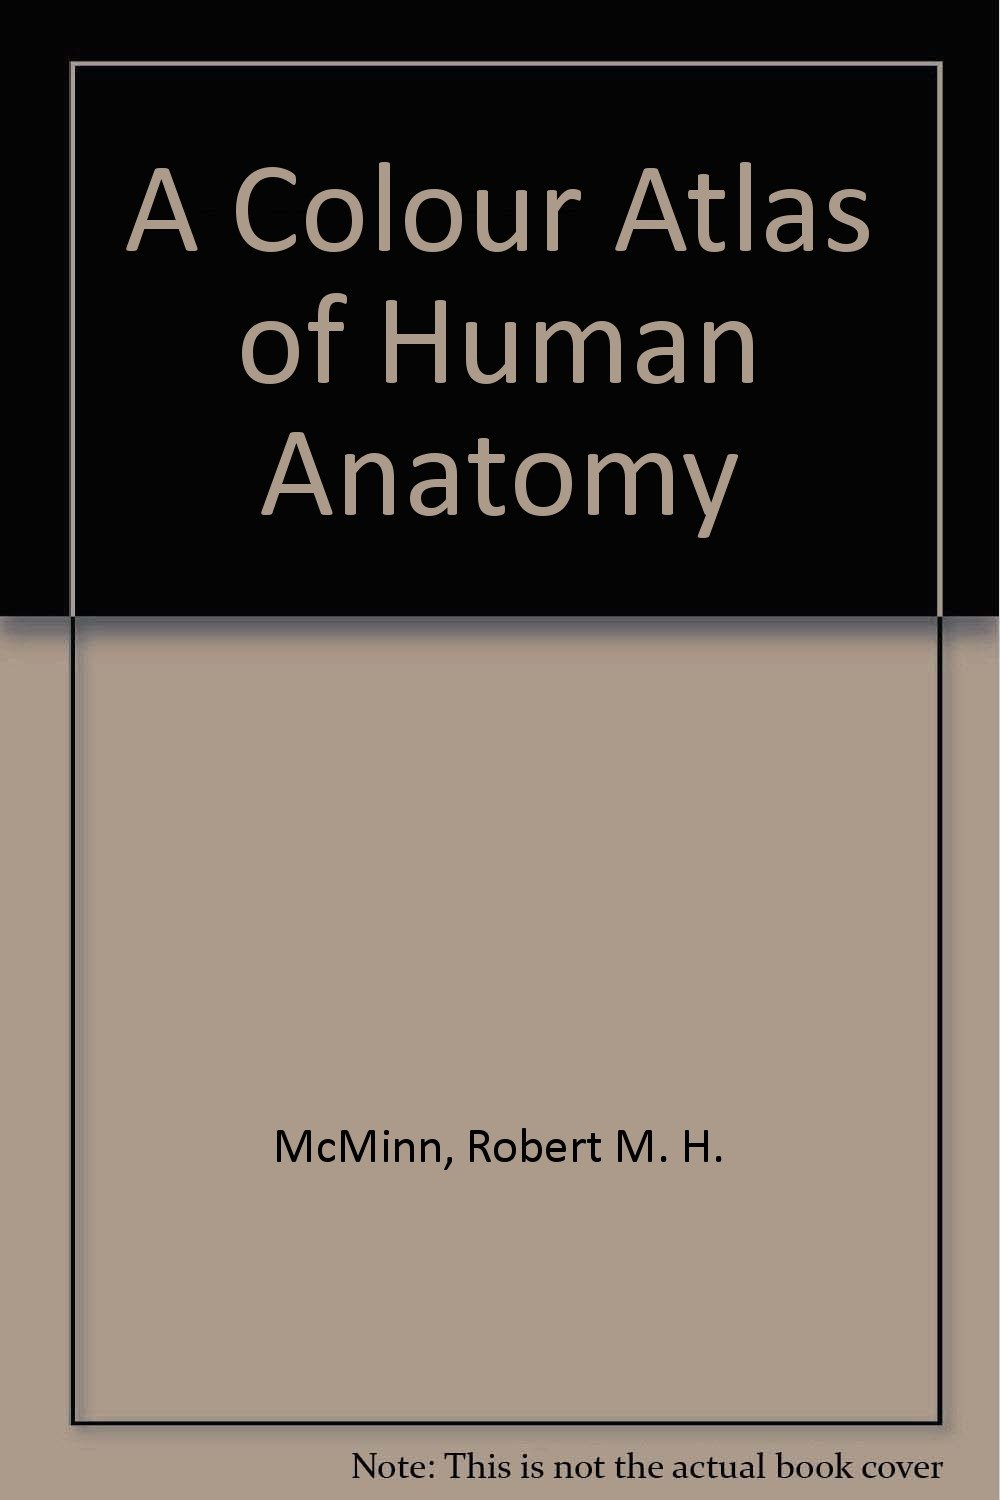 Buy A Colour Atlas of Human Anatomy Book Online at Low Prices in ...